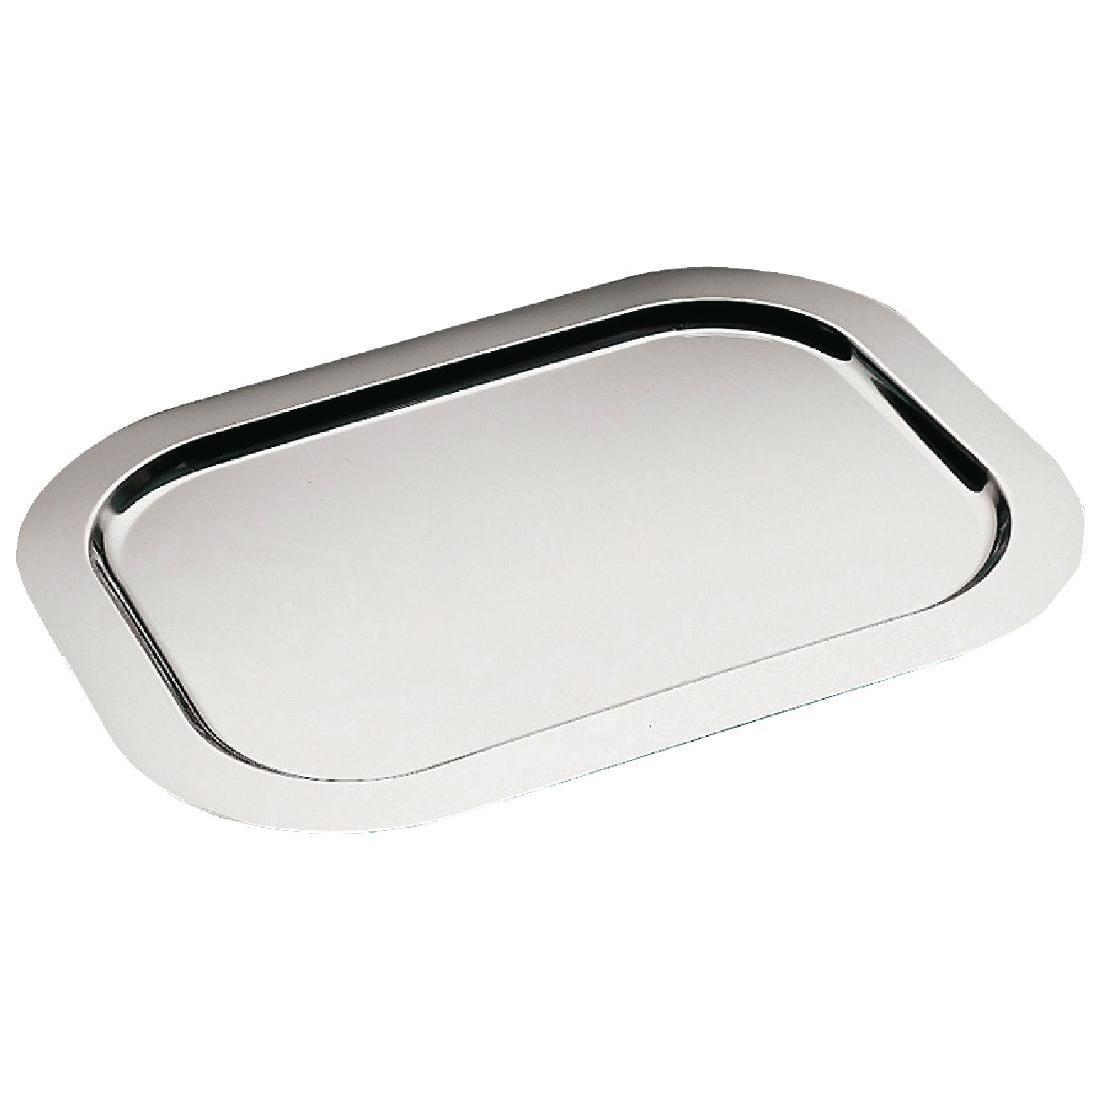 APS Small Stainless Steel Service Tray 480mm - Each - T744